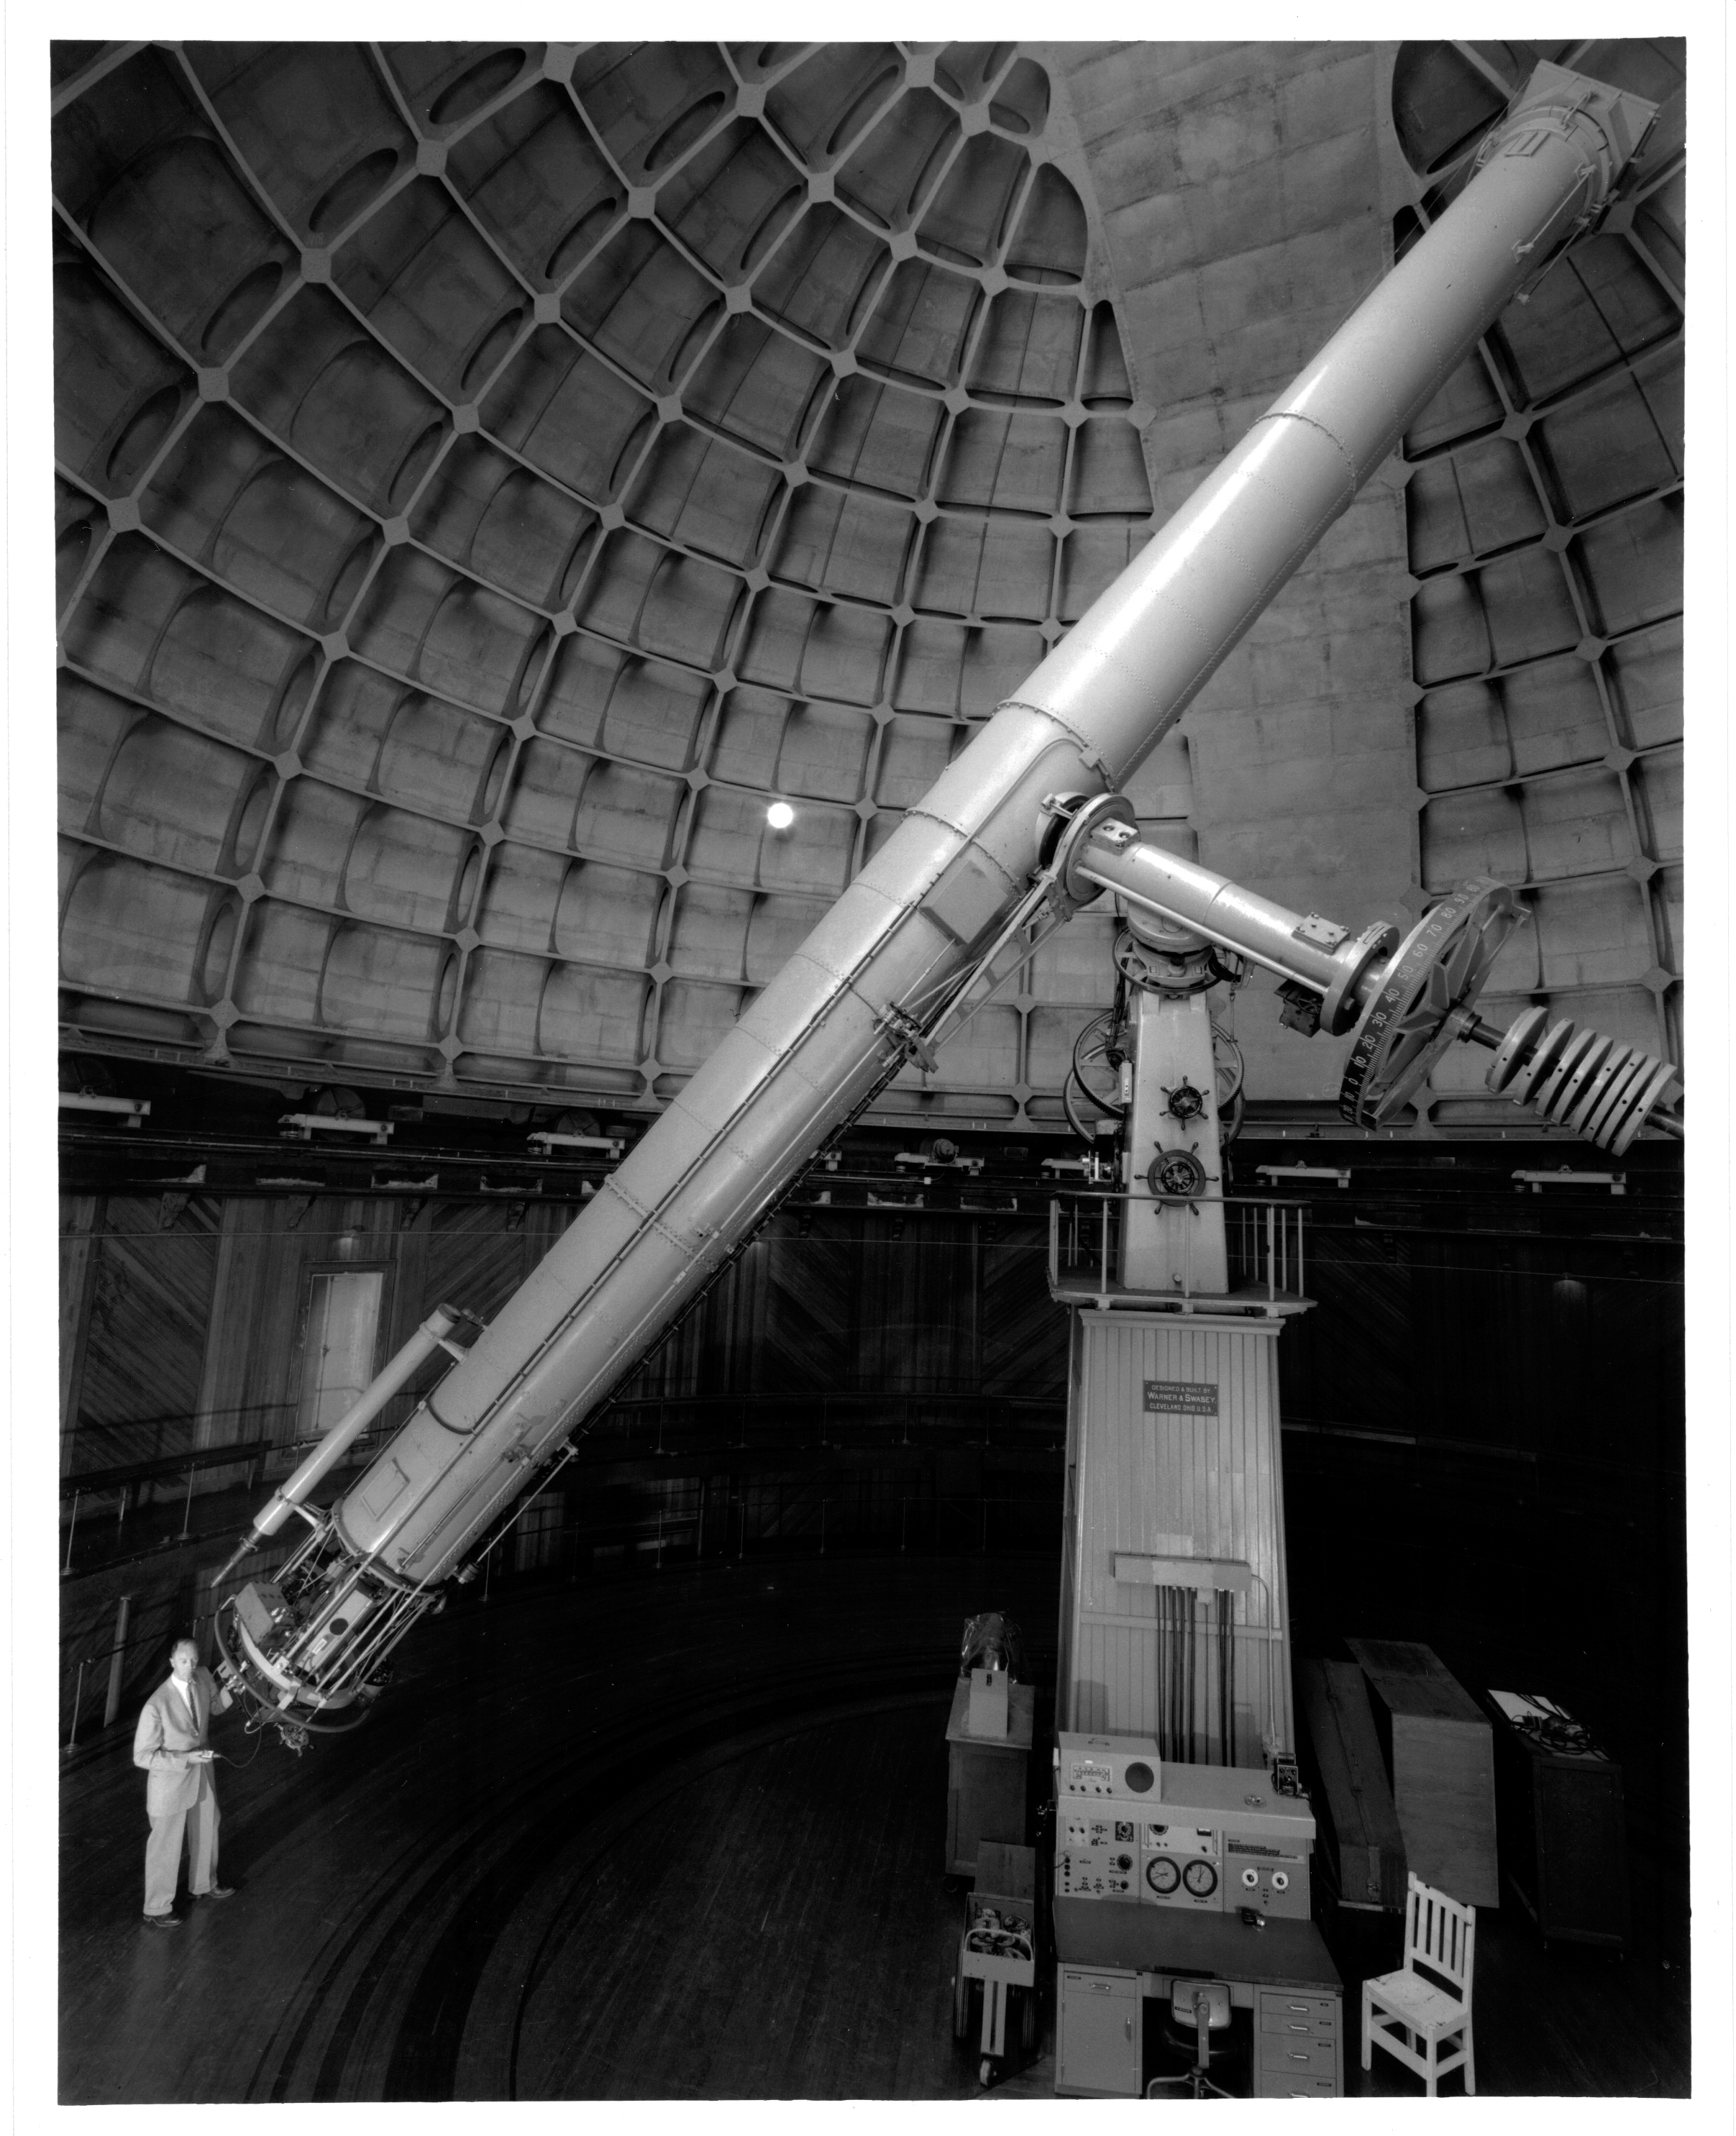 Lick observatory historic photos 171 observatories and instruments